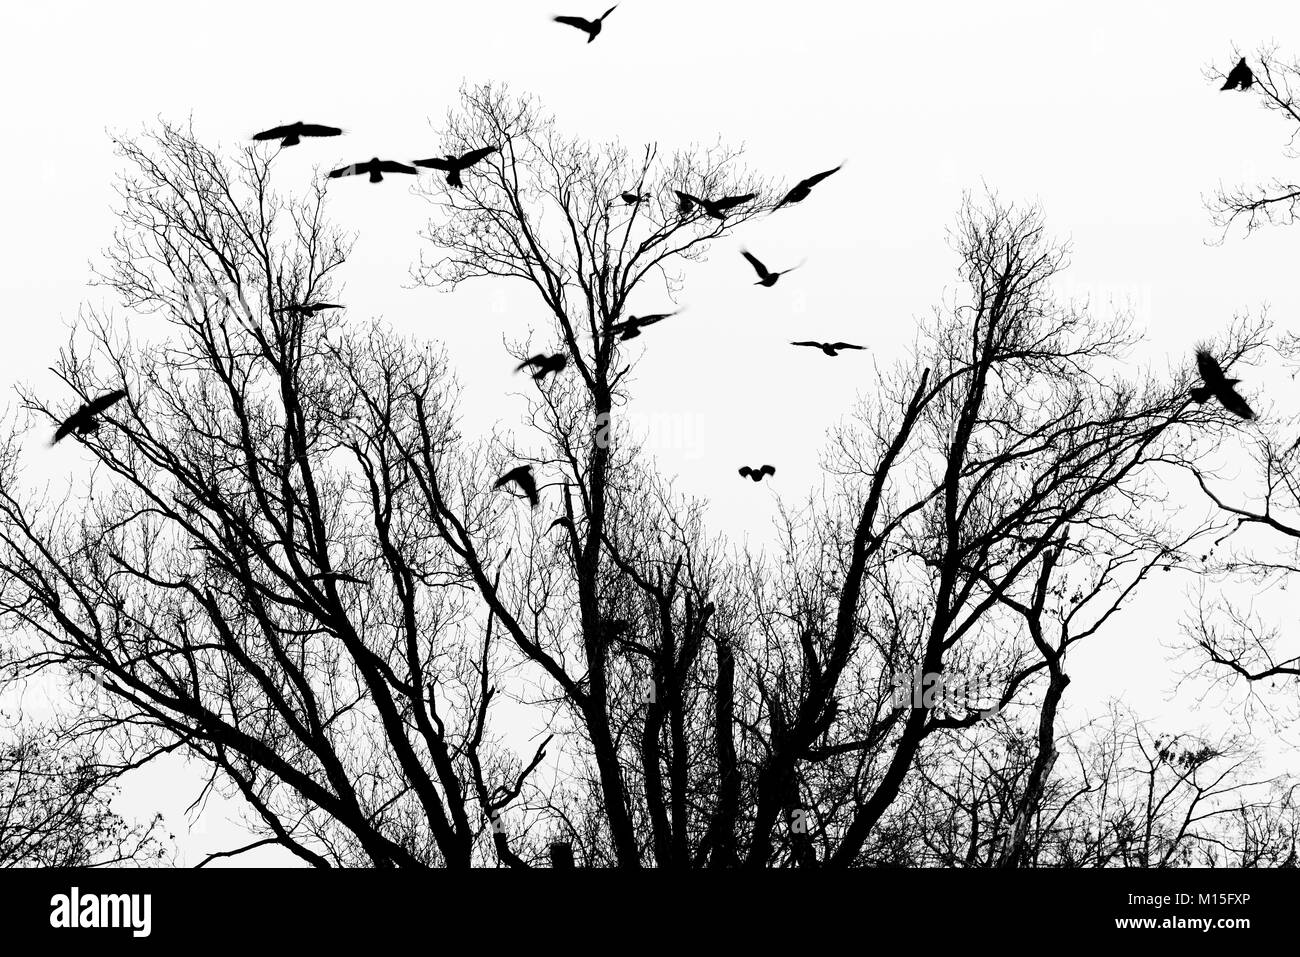 Birds taking flight from the branches of a tree - Stock Image